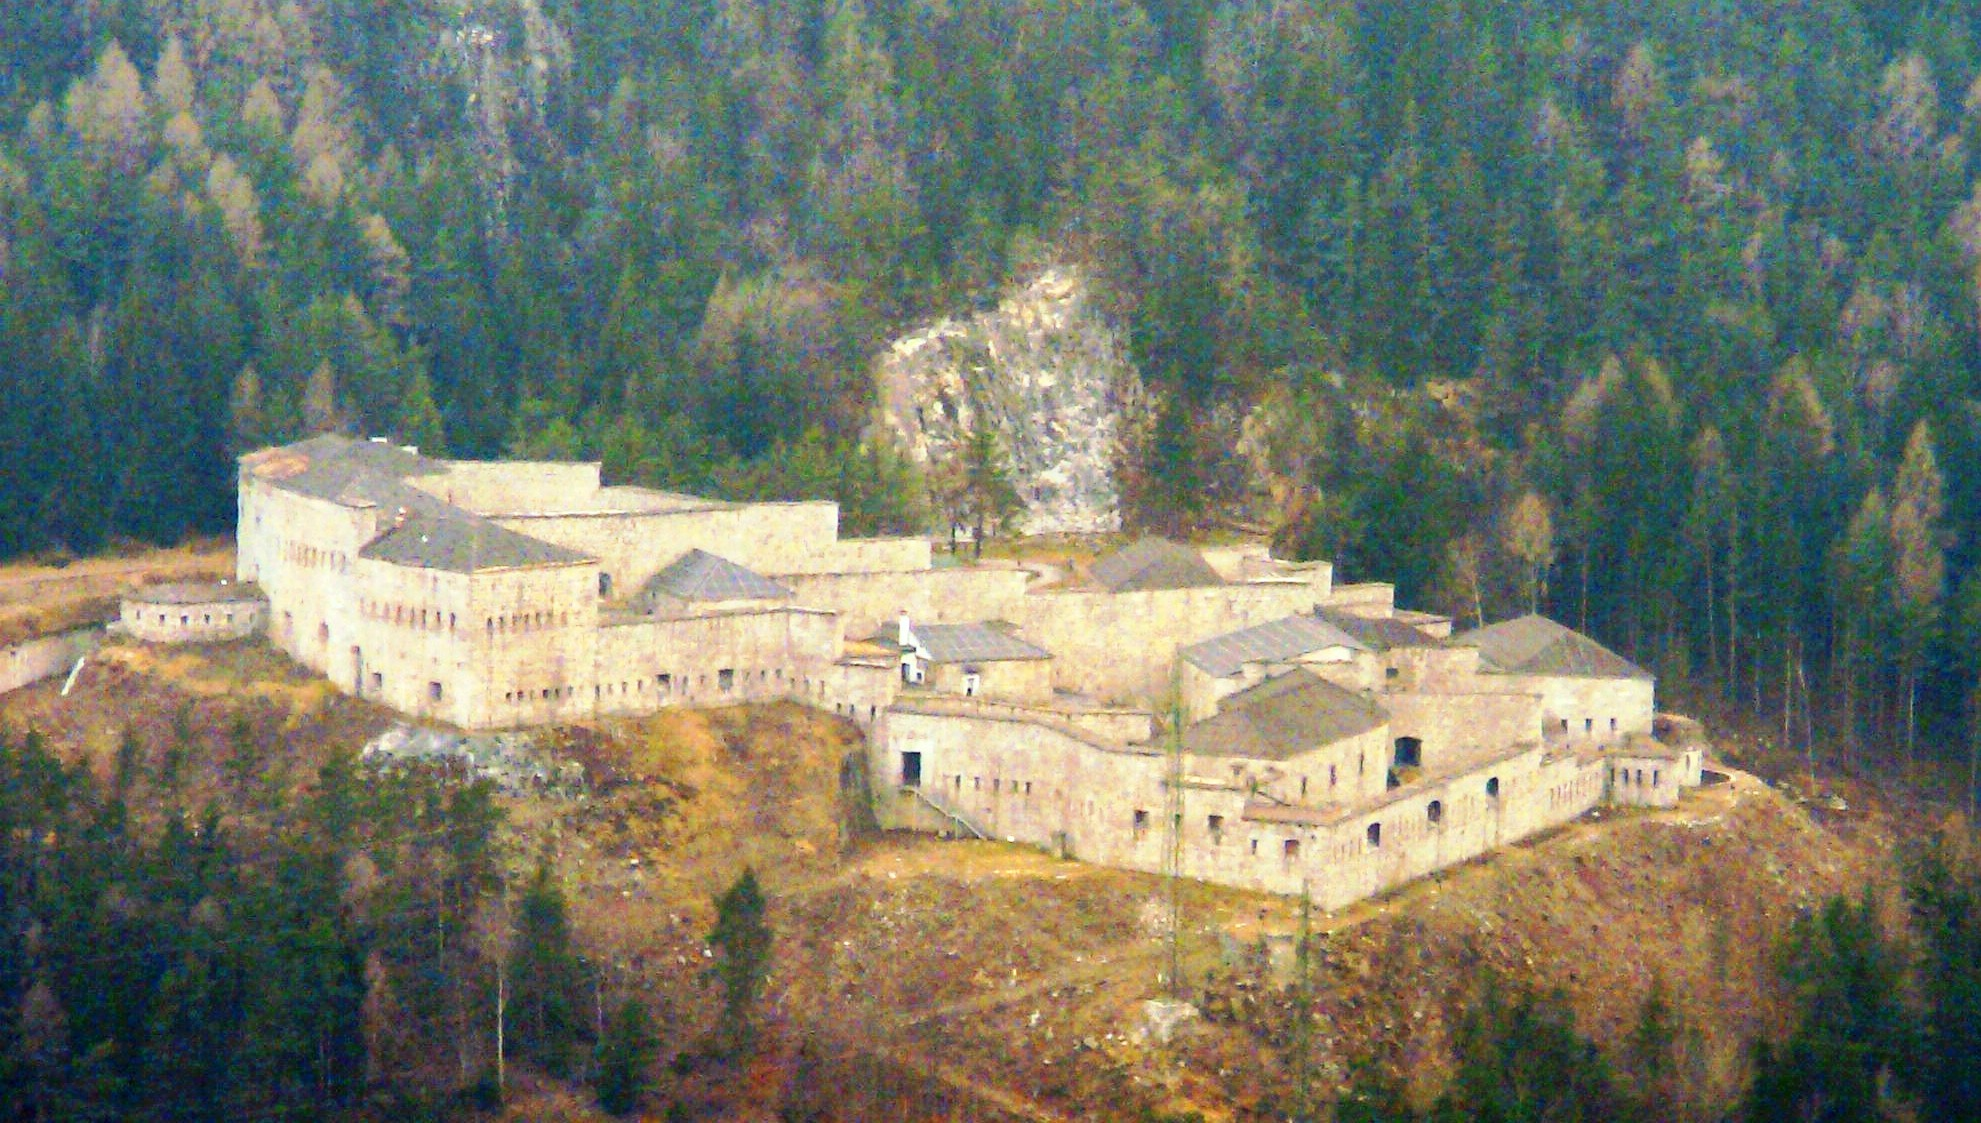 File:Fortezza da Spinga.JPG - Wikimedia Commons